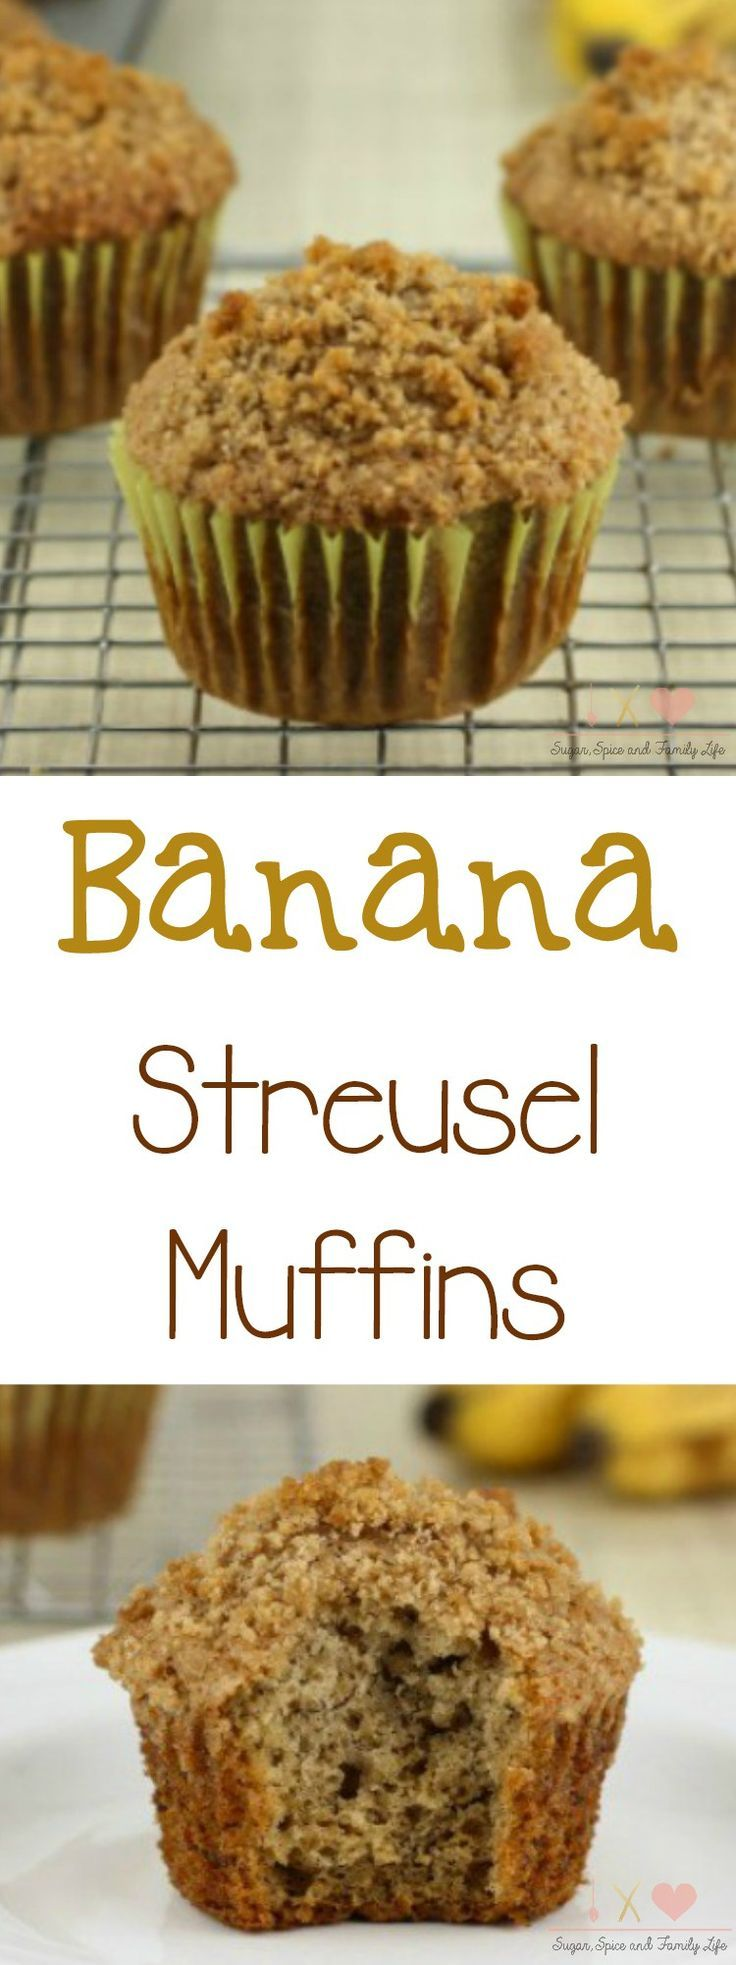 Banana Streusel Muffins are a delicious way to use up ripe bananas. These banana muffins with streusel topping will have everyone coming back for more at breakfast time or as a snack.  - Banana Streusel Muffins Recipe on Sugar, Spice and Family Life #bananamuffins #bananas #muffins #streusel #bread #recipe